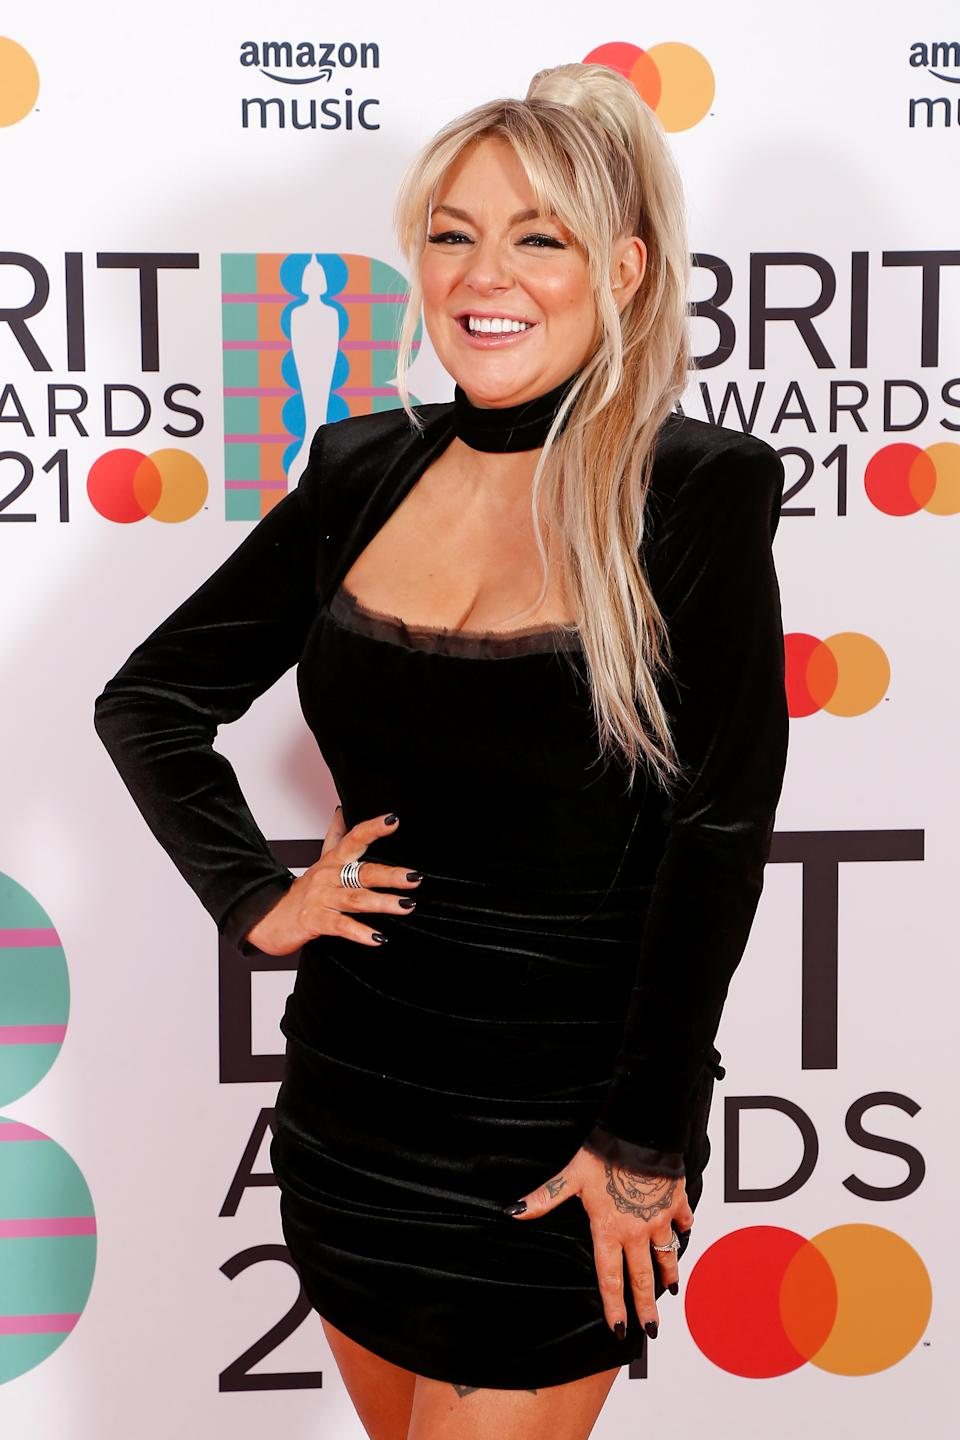 LONDON, ENGLAND - MAY 11: Sheridan Smith attends The BRIT Awards 2021 at The O2 Arena on May 11, 2021 in London, England. (Photo by JMEnternational/JMEnternational for BRIT Awards/Getty Images)